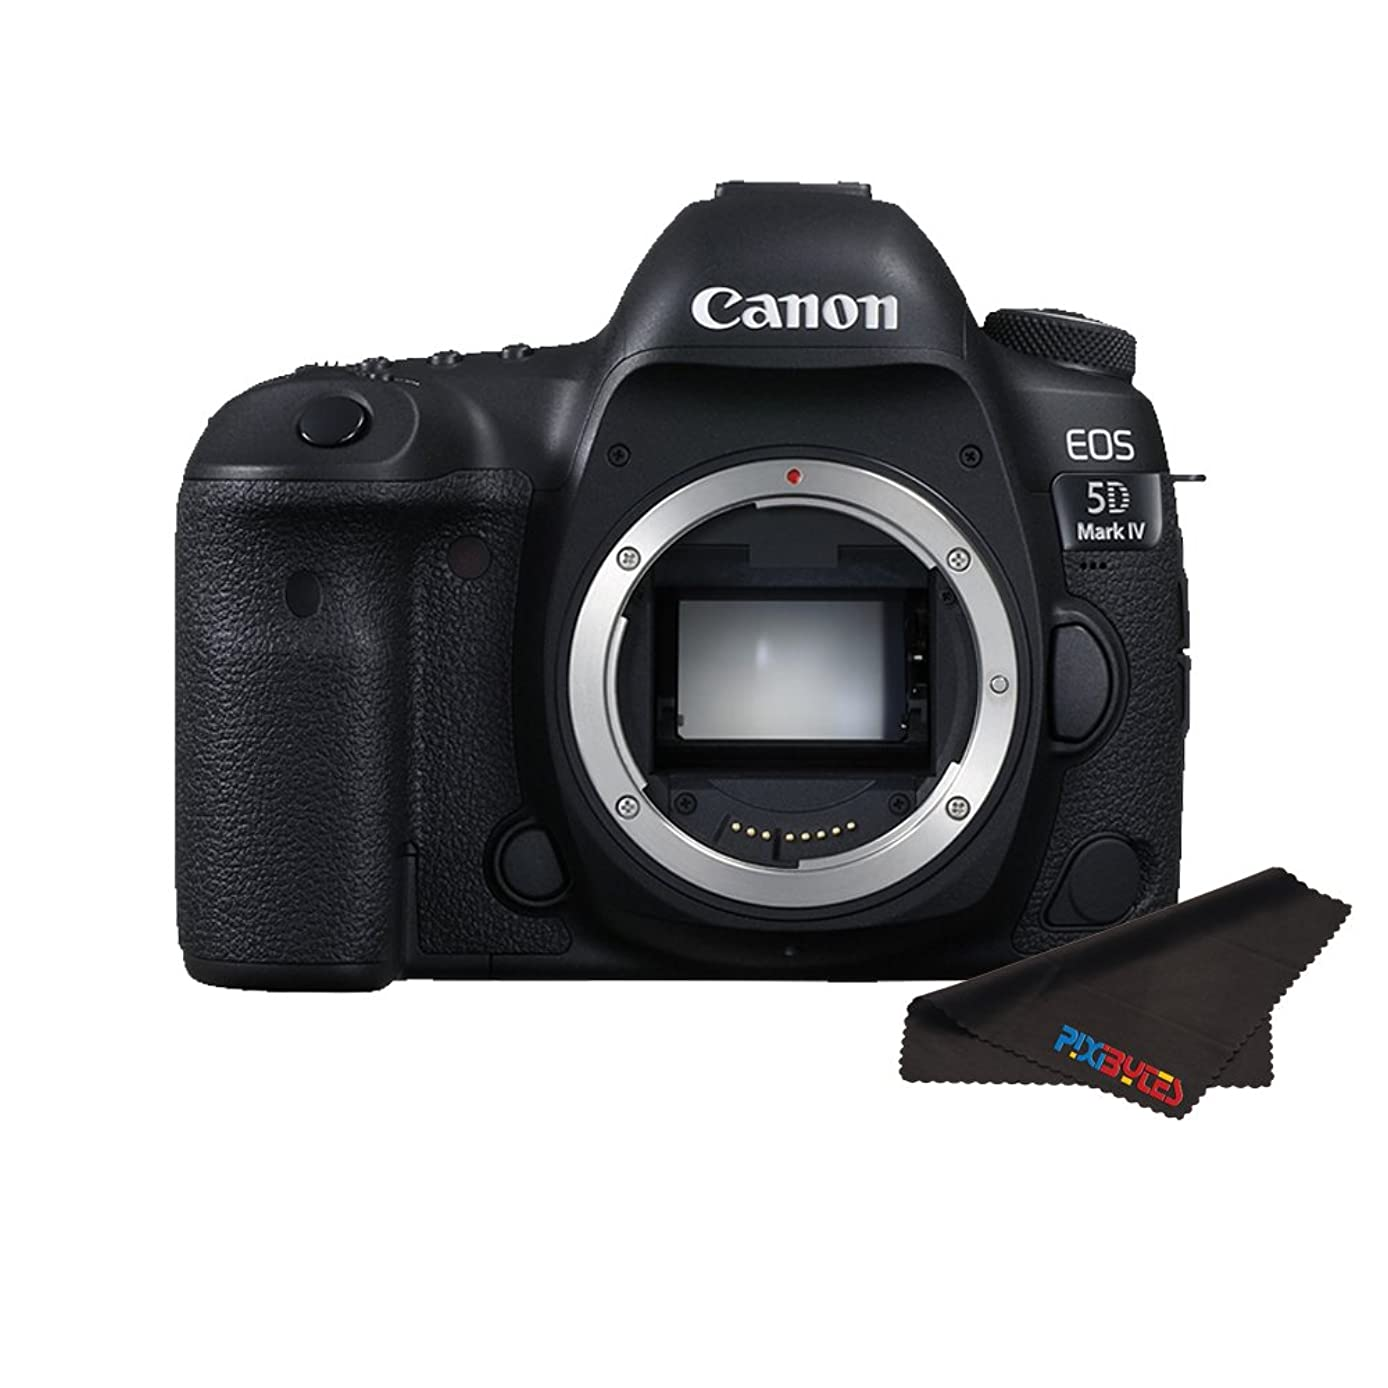 Canon EOS 5D Mark IV DSLR Camera (Body Only) + Pixibytes Exclusive Microfiber Cleaning Cloth (International Version)